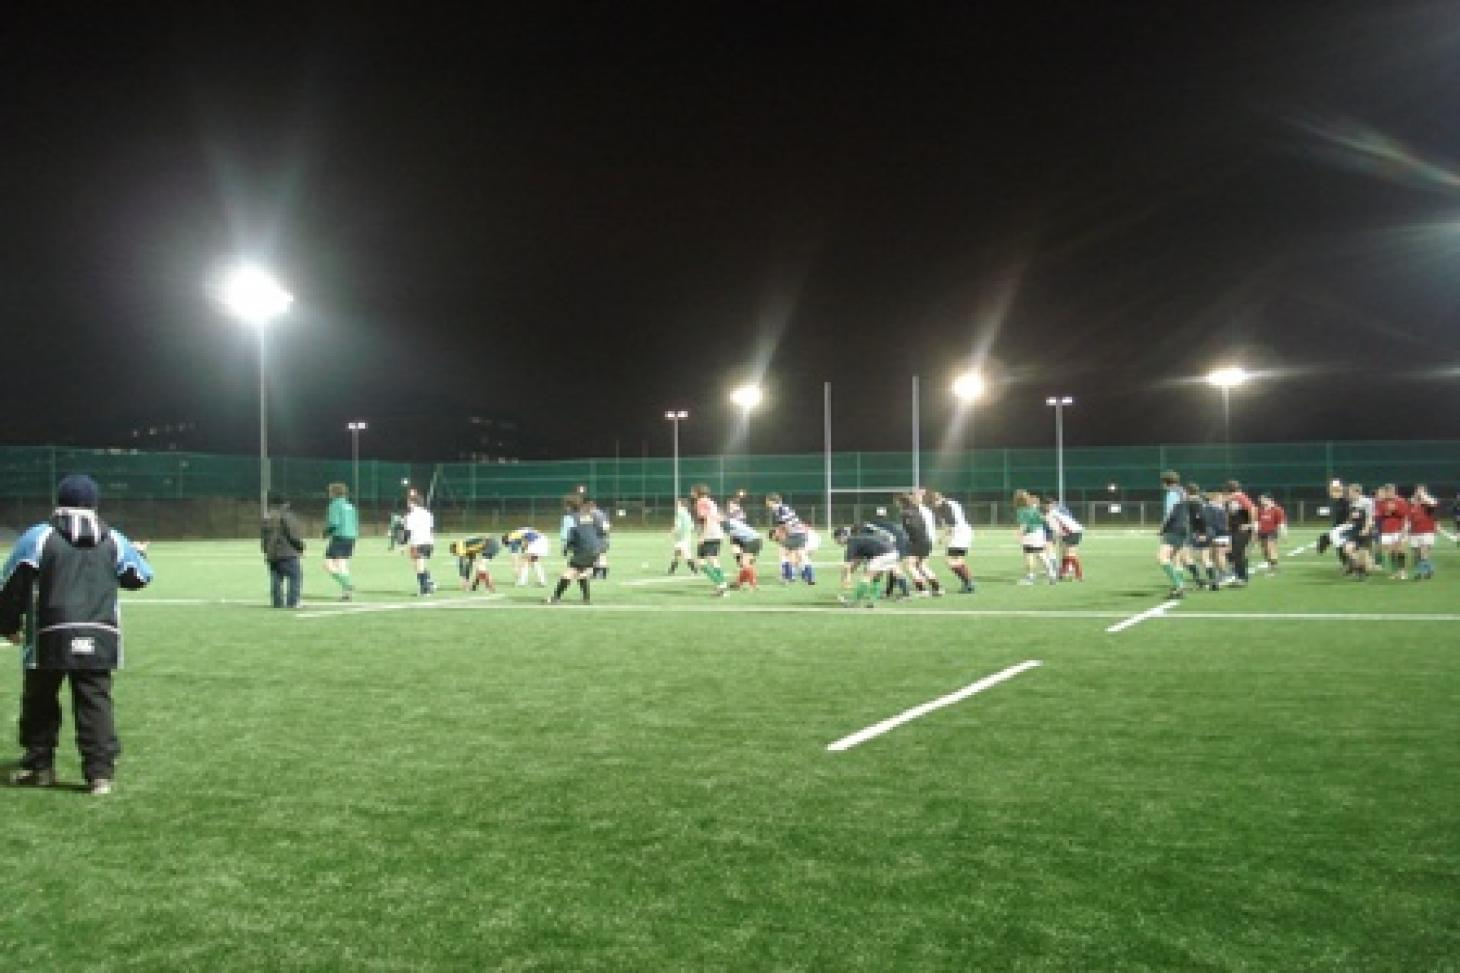 University College Dublin 11 a side | Astroturf football pitch